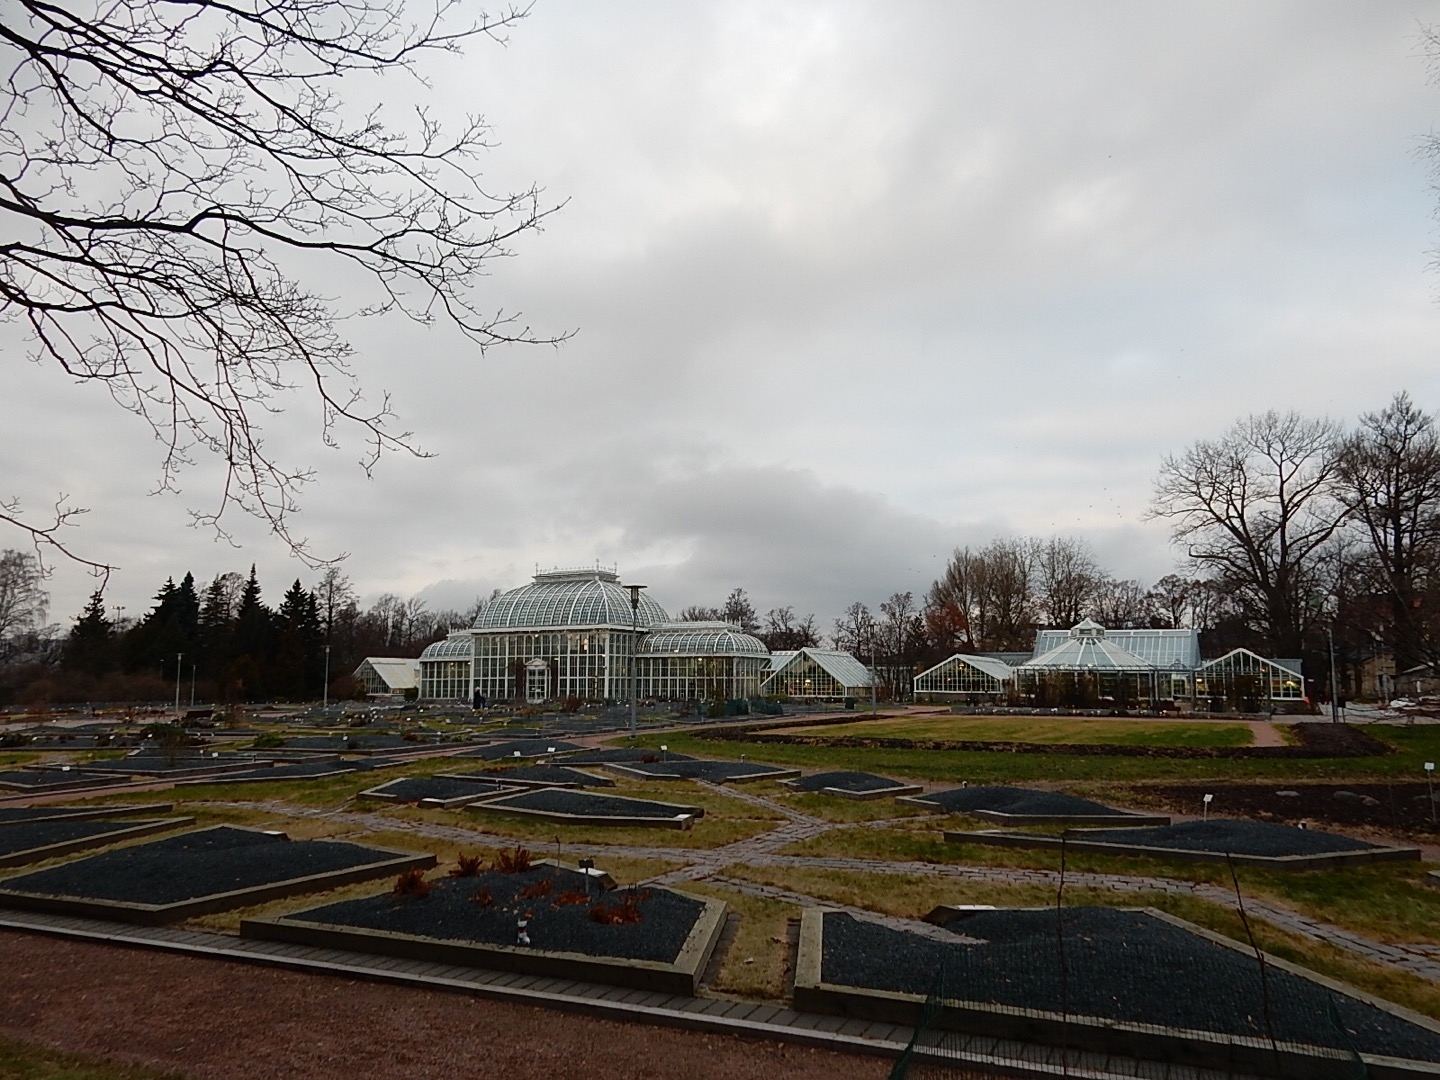 Botanical Garden as seen from Kaisaniemi Park. I stuck my camera through the fence to get an unobstructed view.